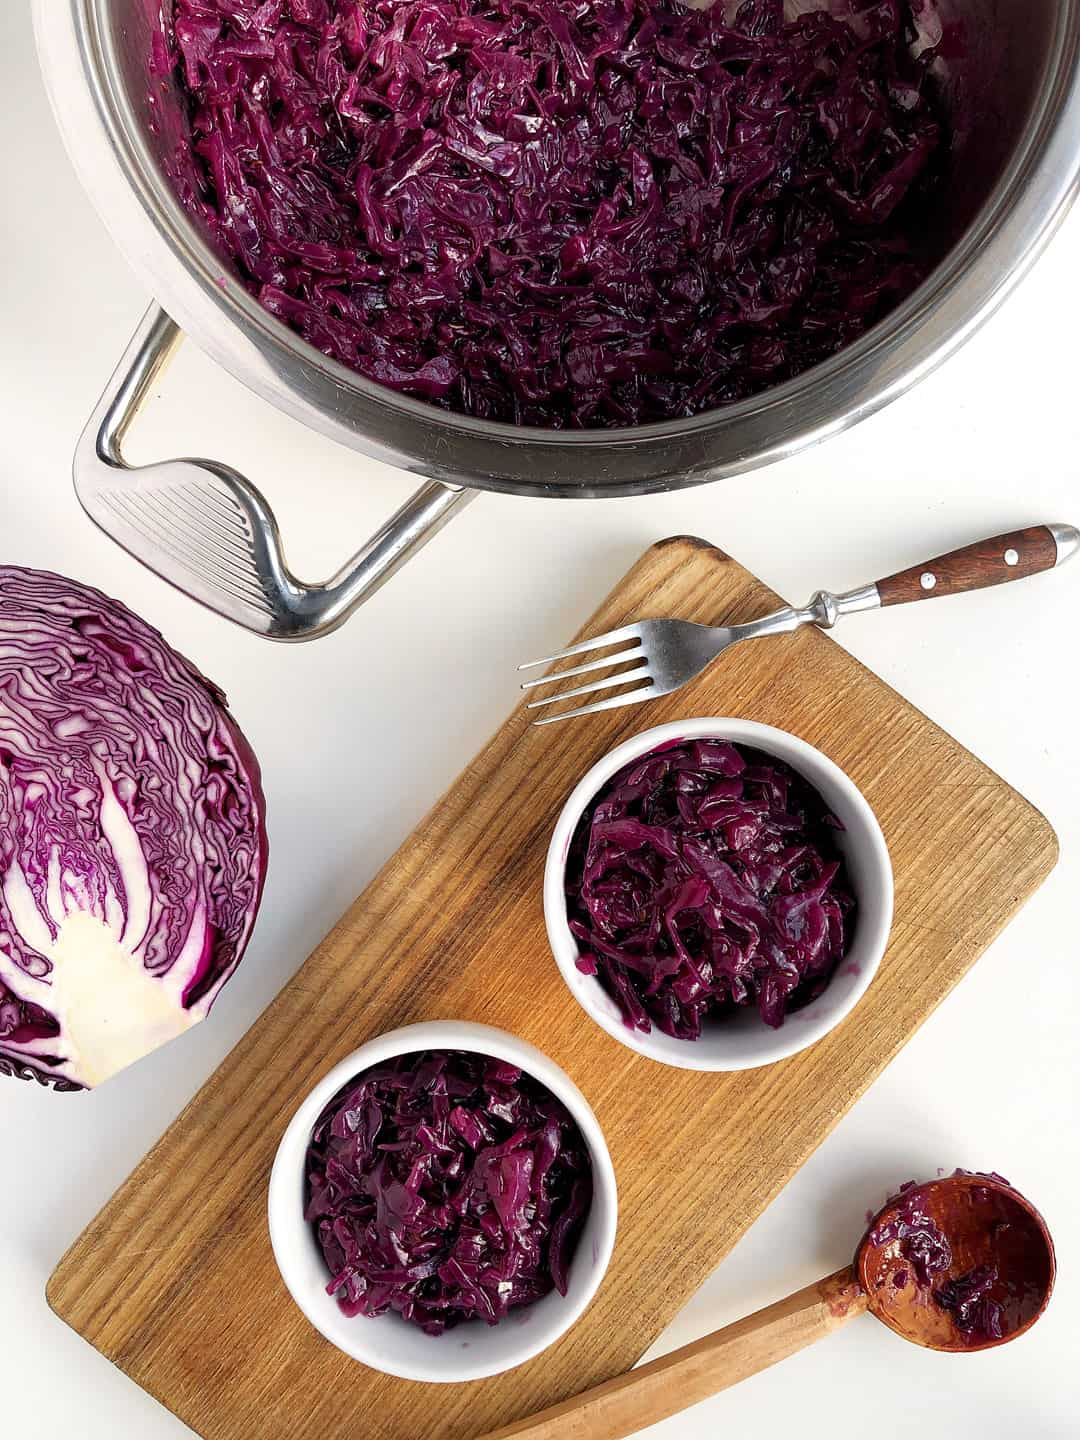 Braised Red Cabbage Side Dish